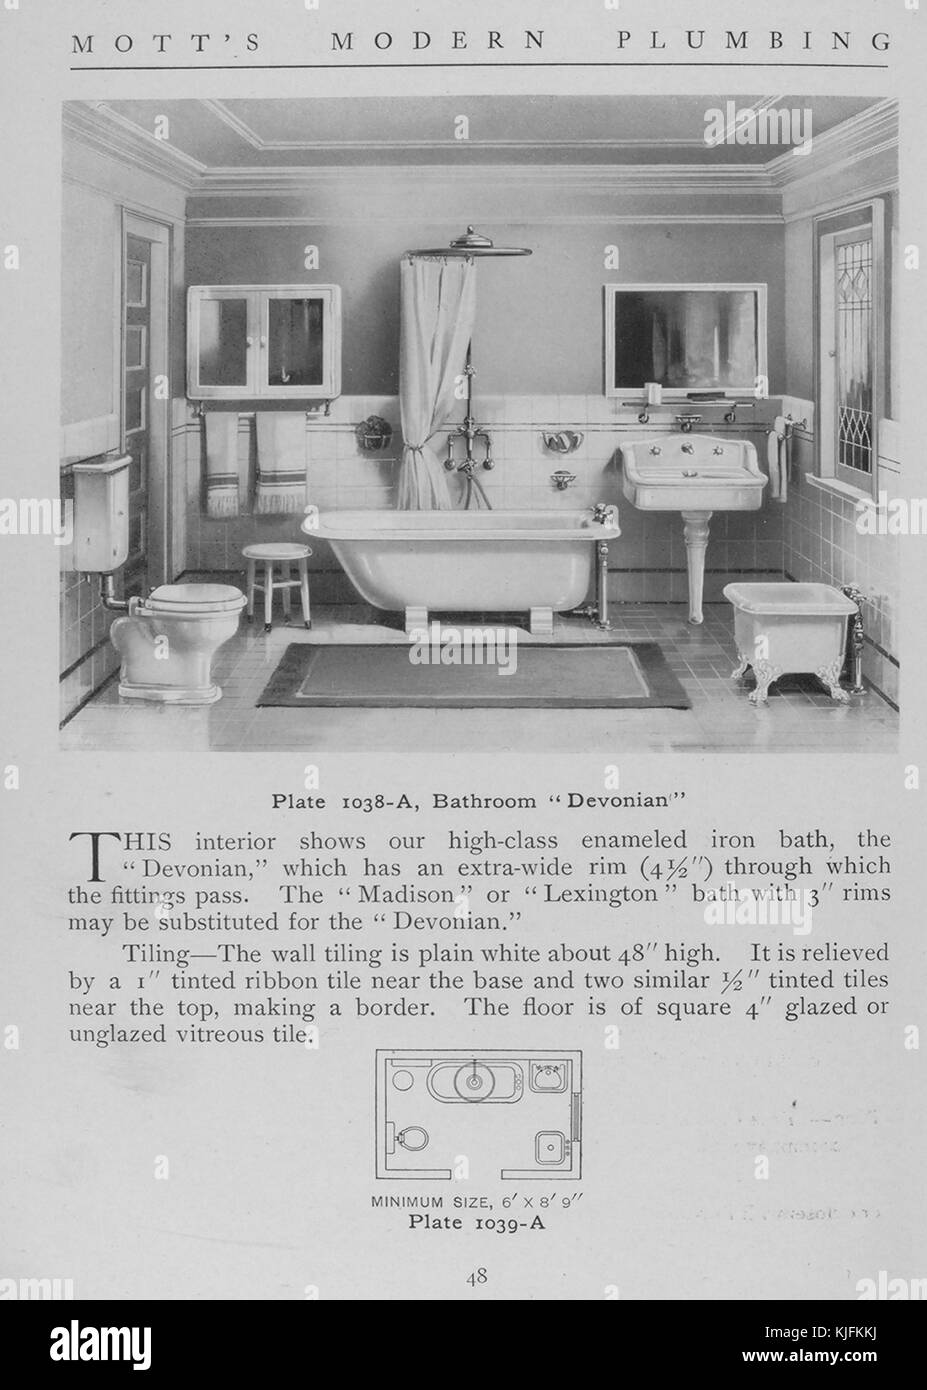 Bathroom Devonian Style 1911 From The New York Public Library